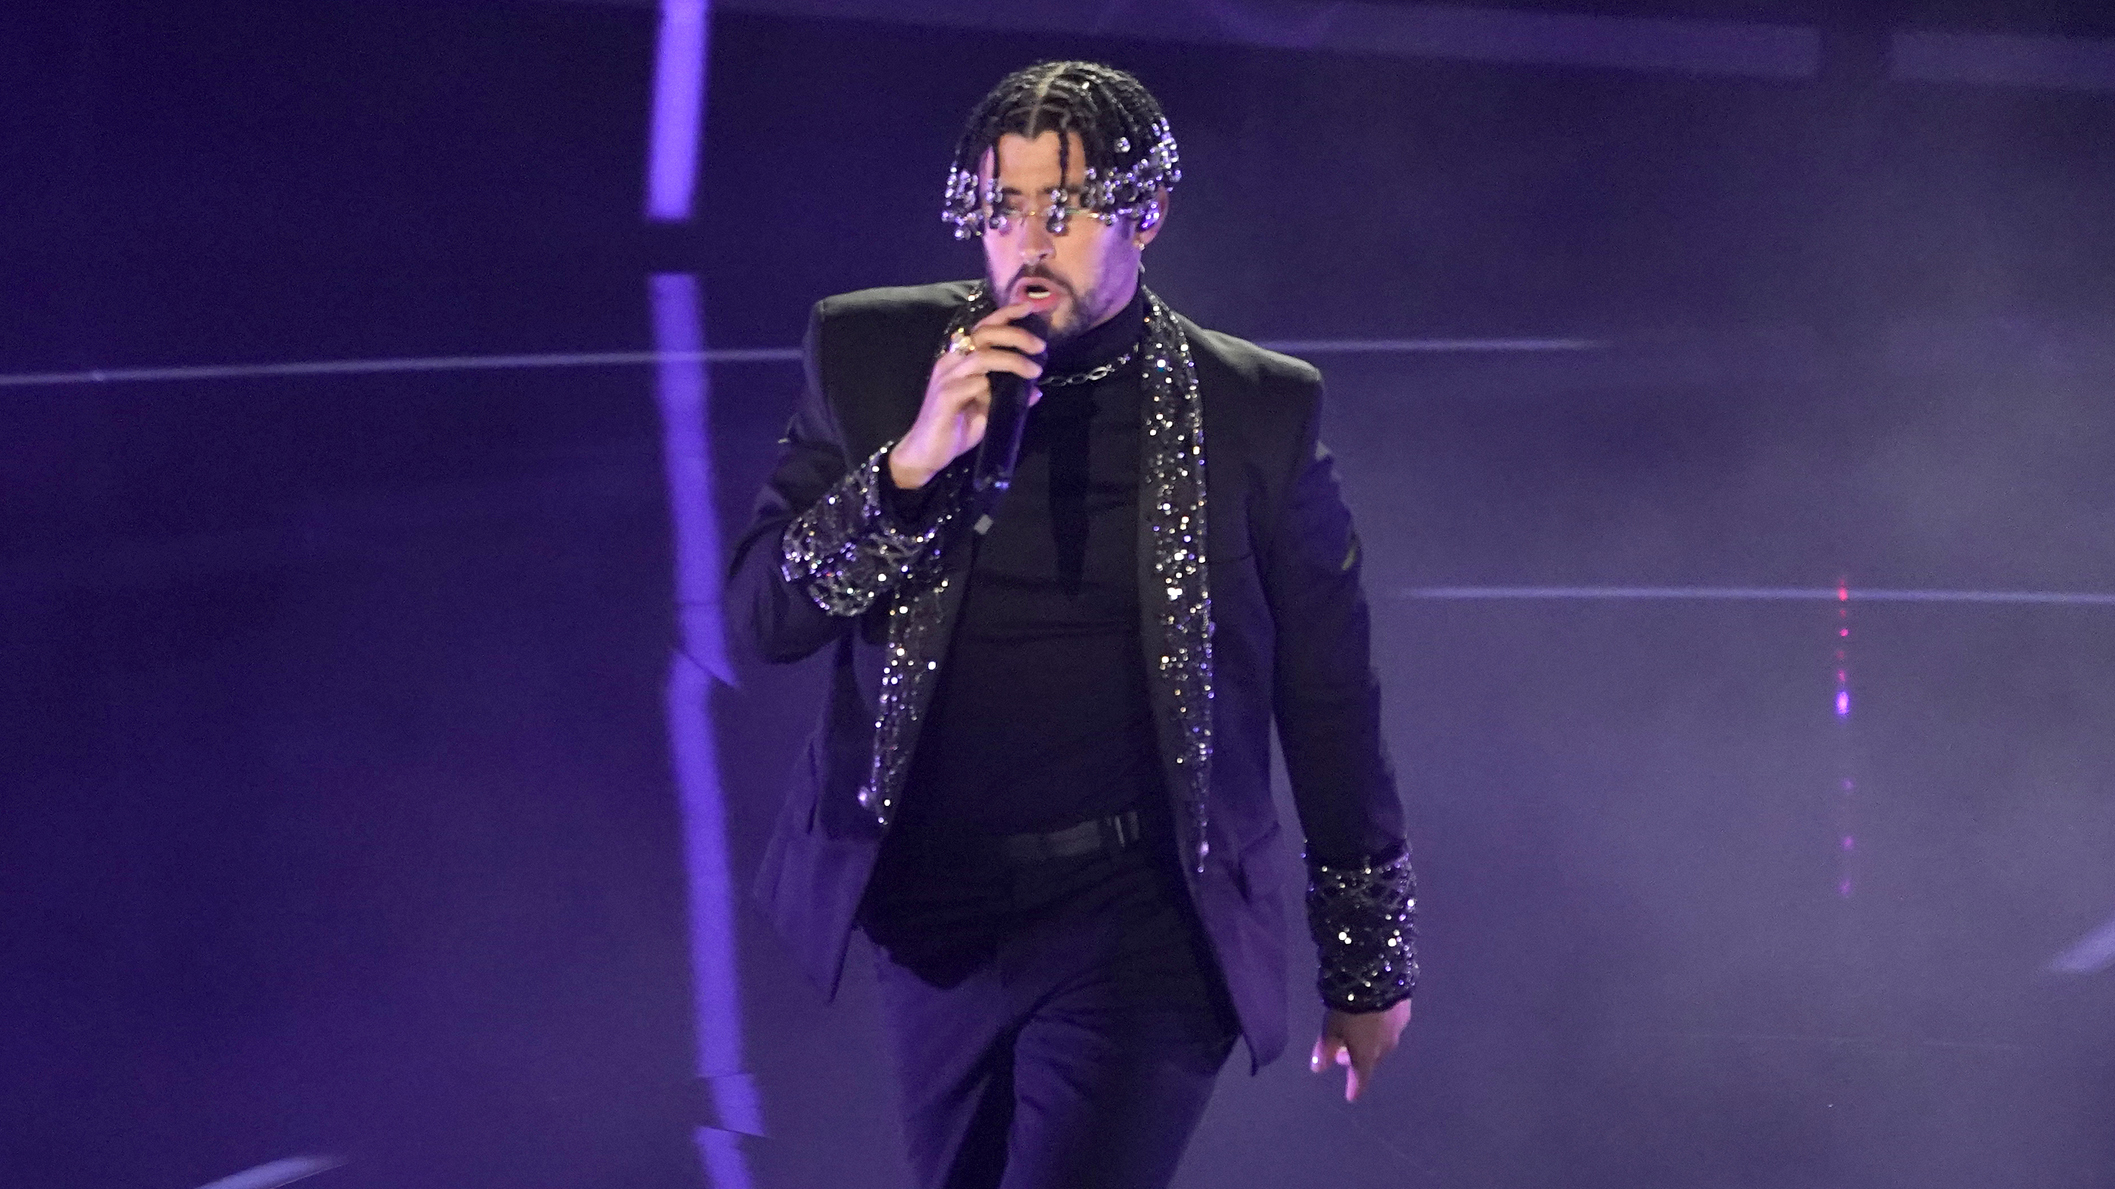 """Bad Bunny performs """"Yo Perreo Sola"""" at the Billboard Music Awards on Wednesday, Oct. 14, 2020, at the Dolby Theatre in Los Angeles. (AP Photo/Chris Pizzello)"""